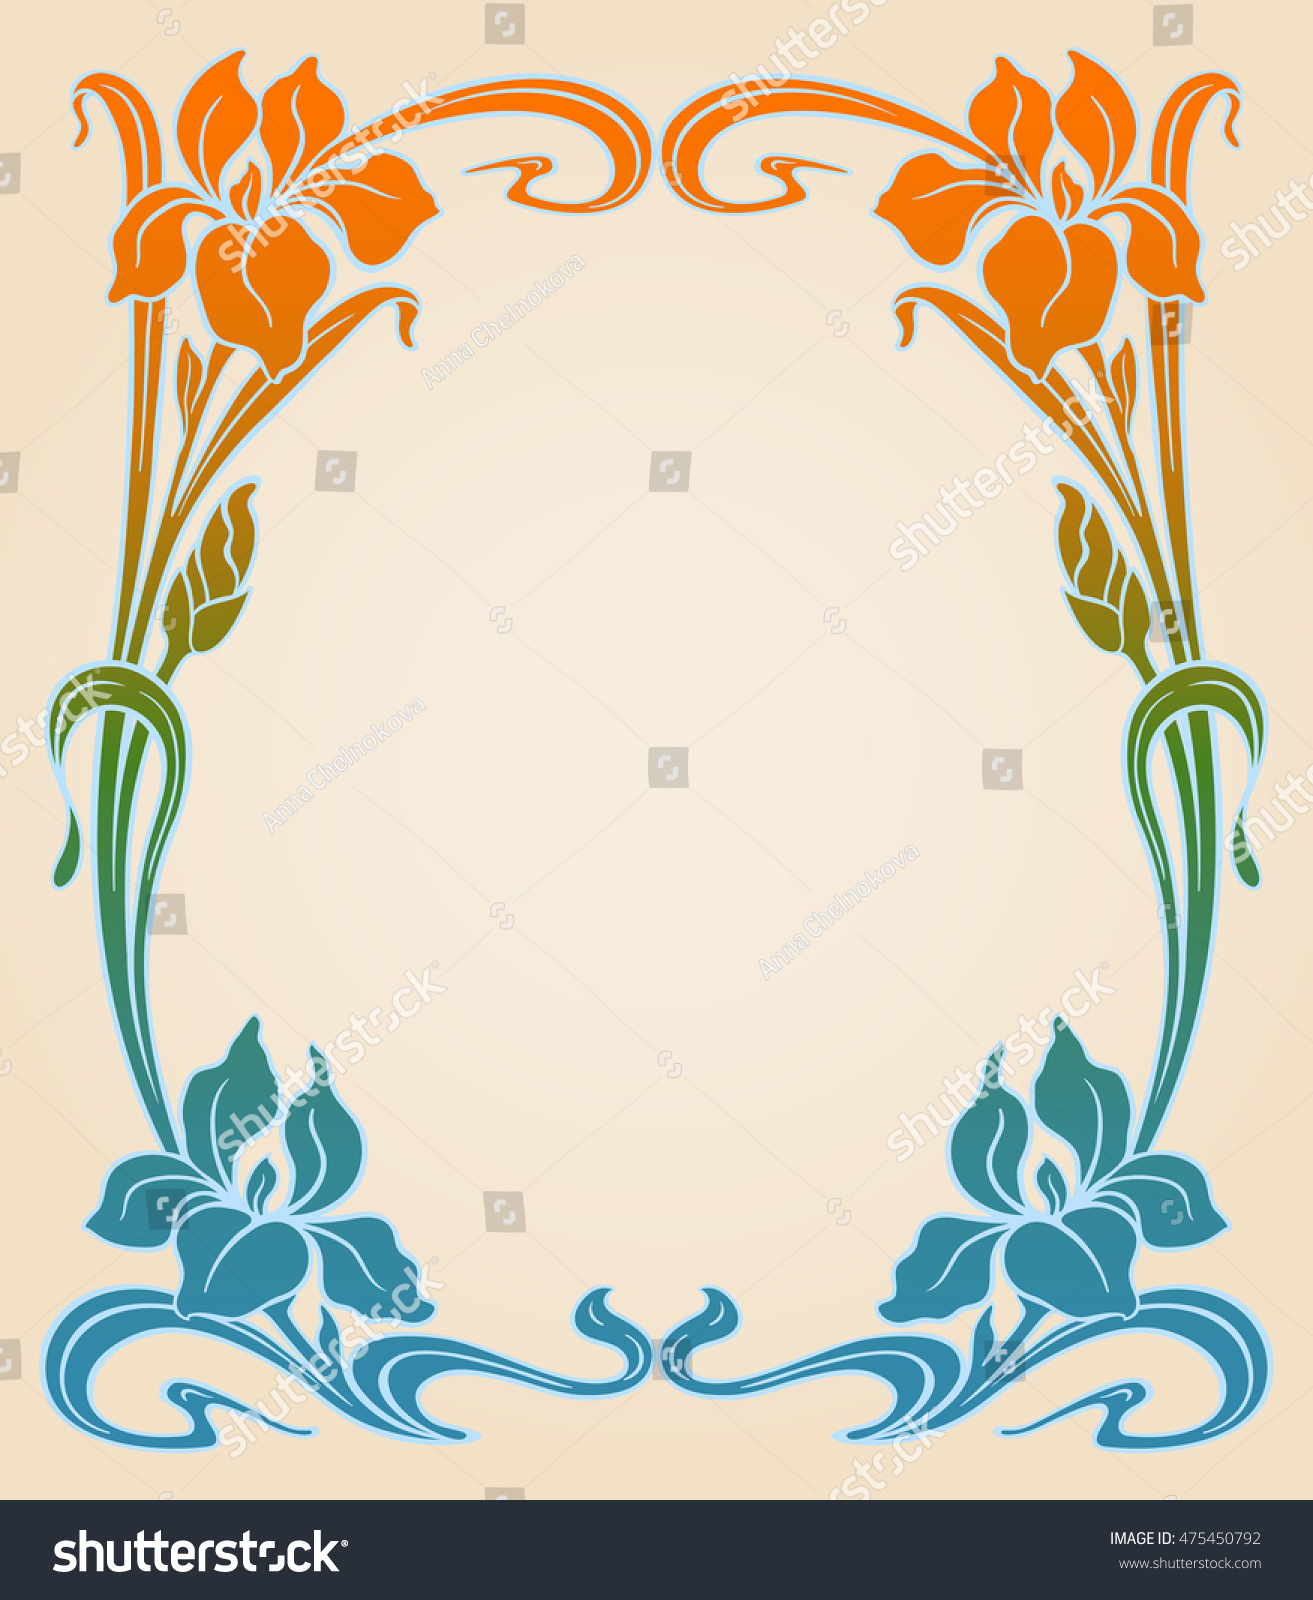 Vector art nouveau ornamental background with space for text